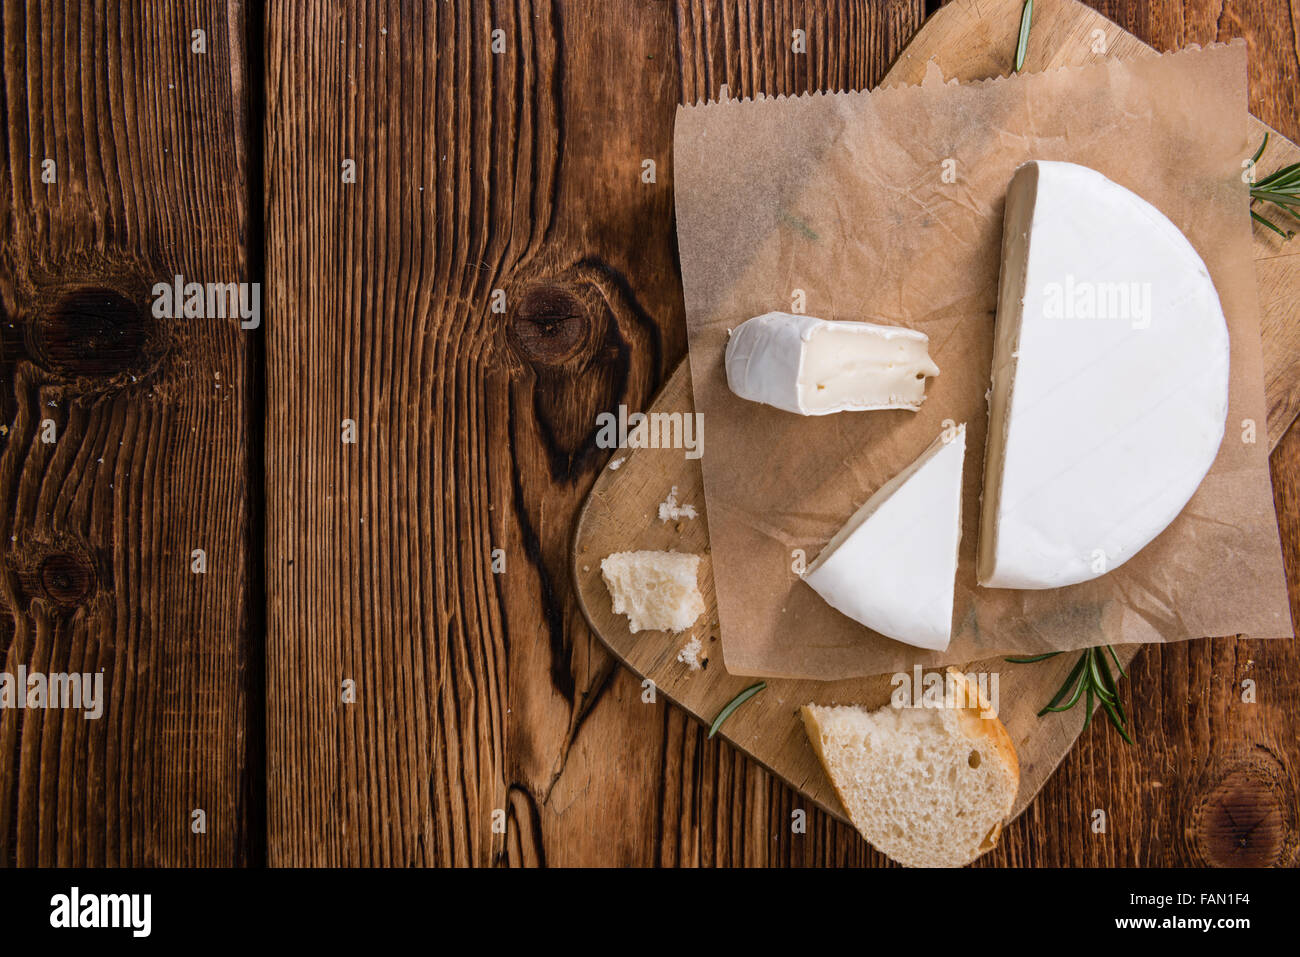 Pieces of Camembert (detailed close-up shot) on wooden background - Stock Image